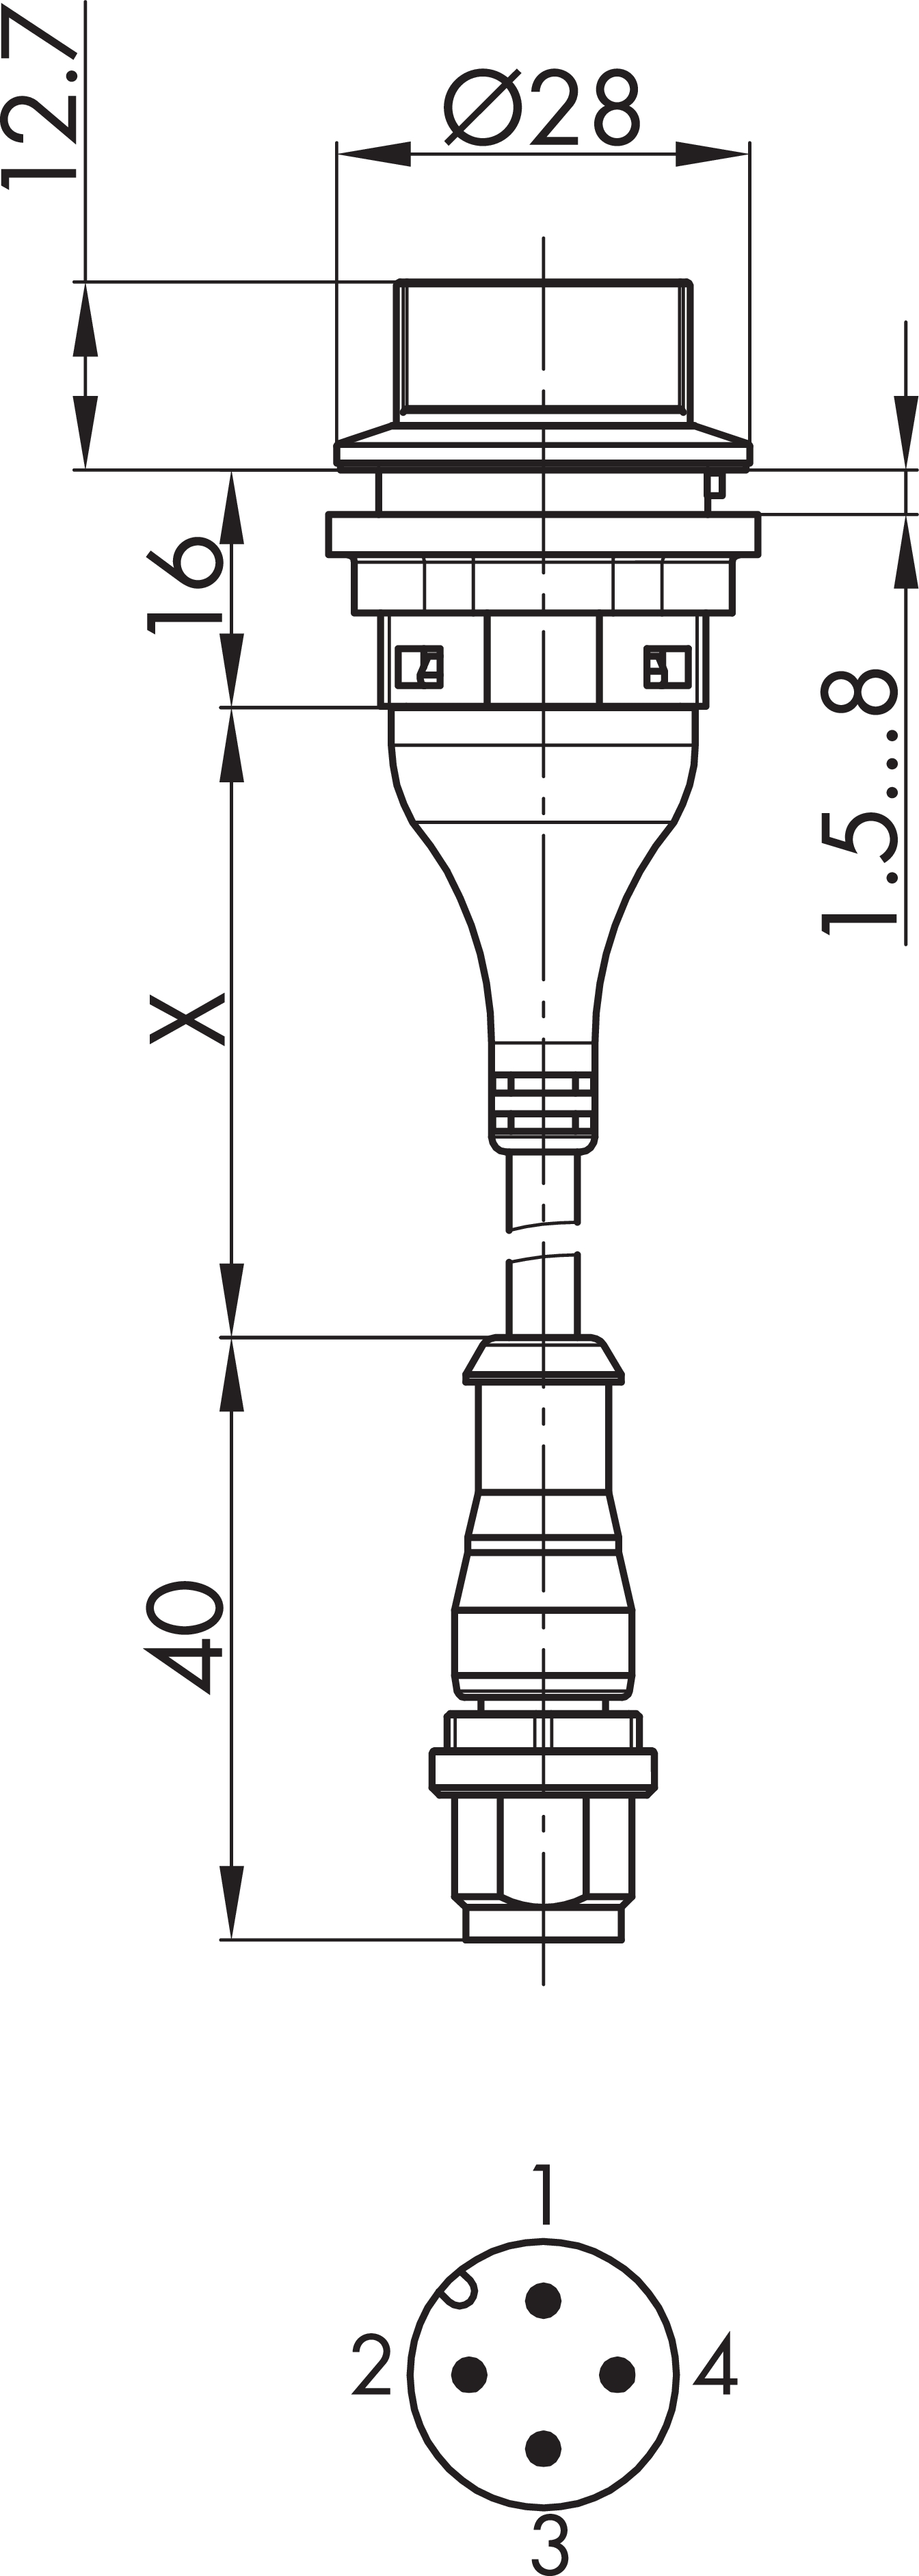 Schlegel Shortron M12 Swbii M08 Selector Switch Maintained Wiring Diagram Pedal Dimensional Drawing